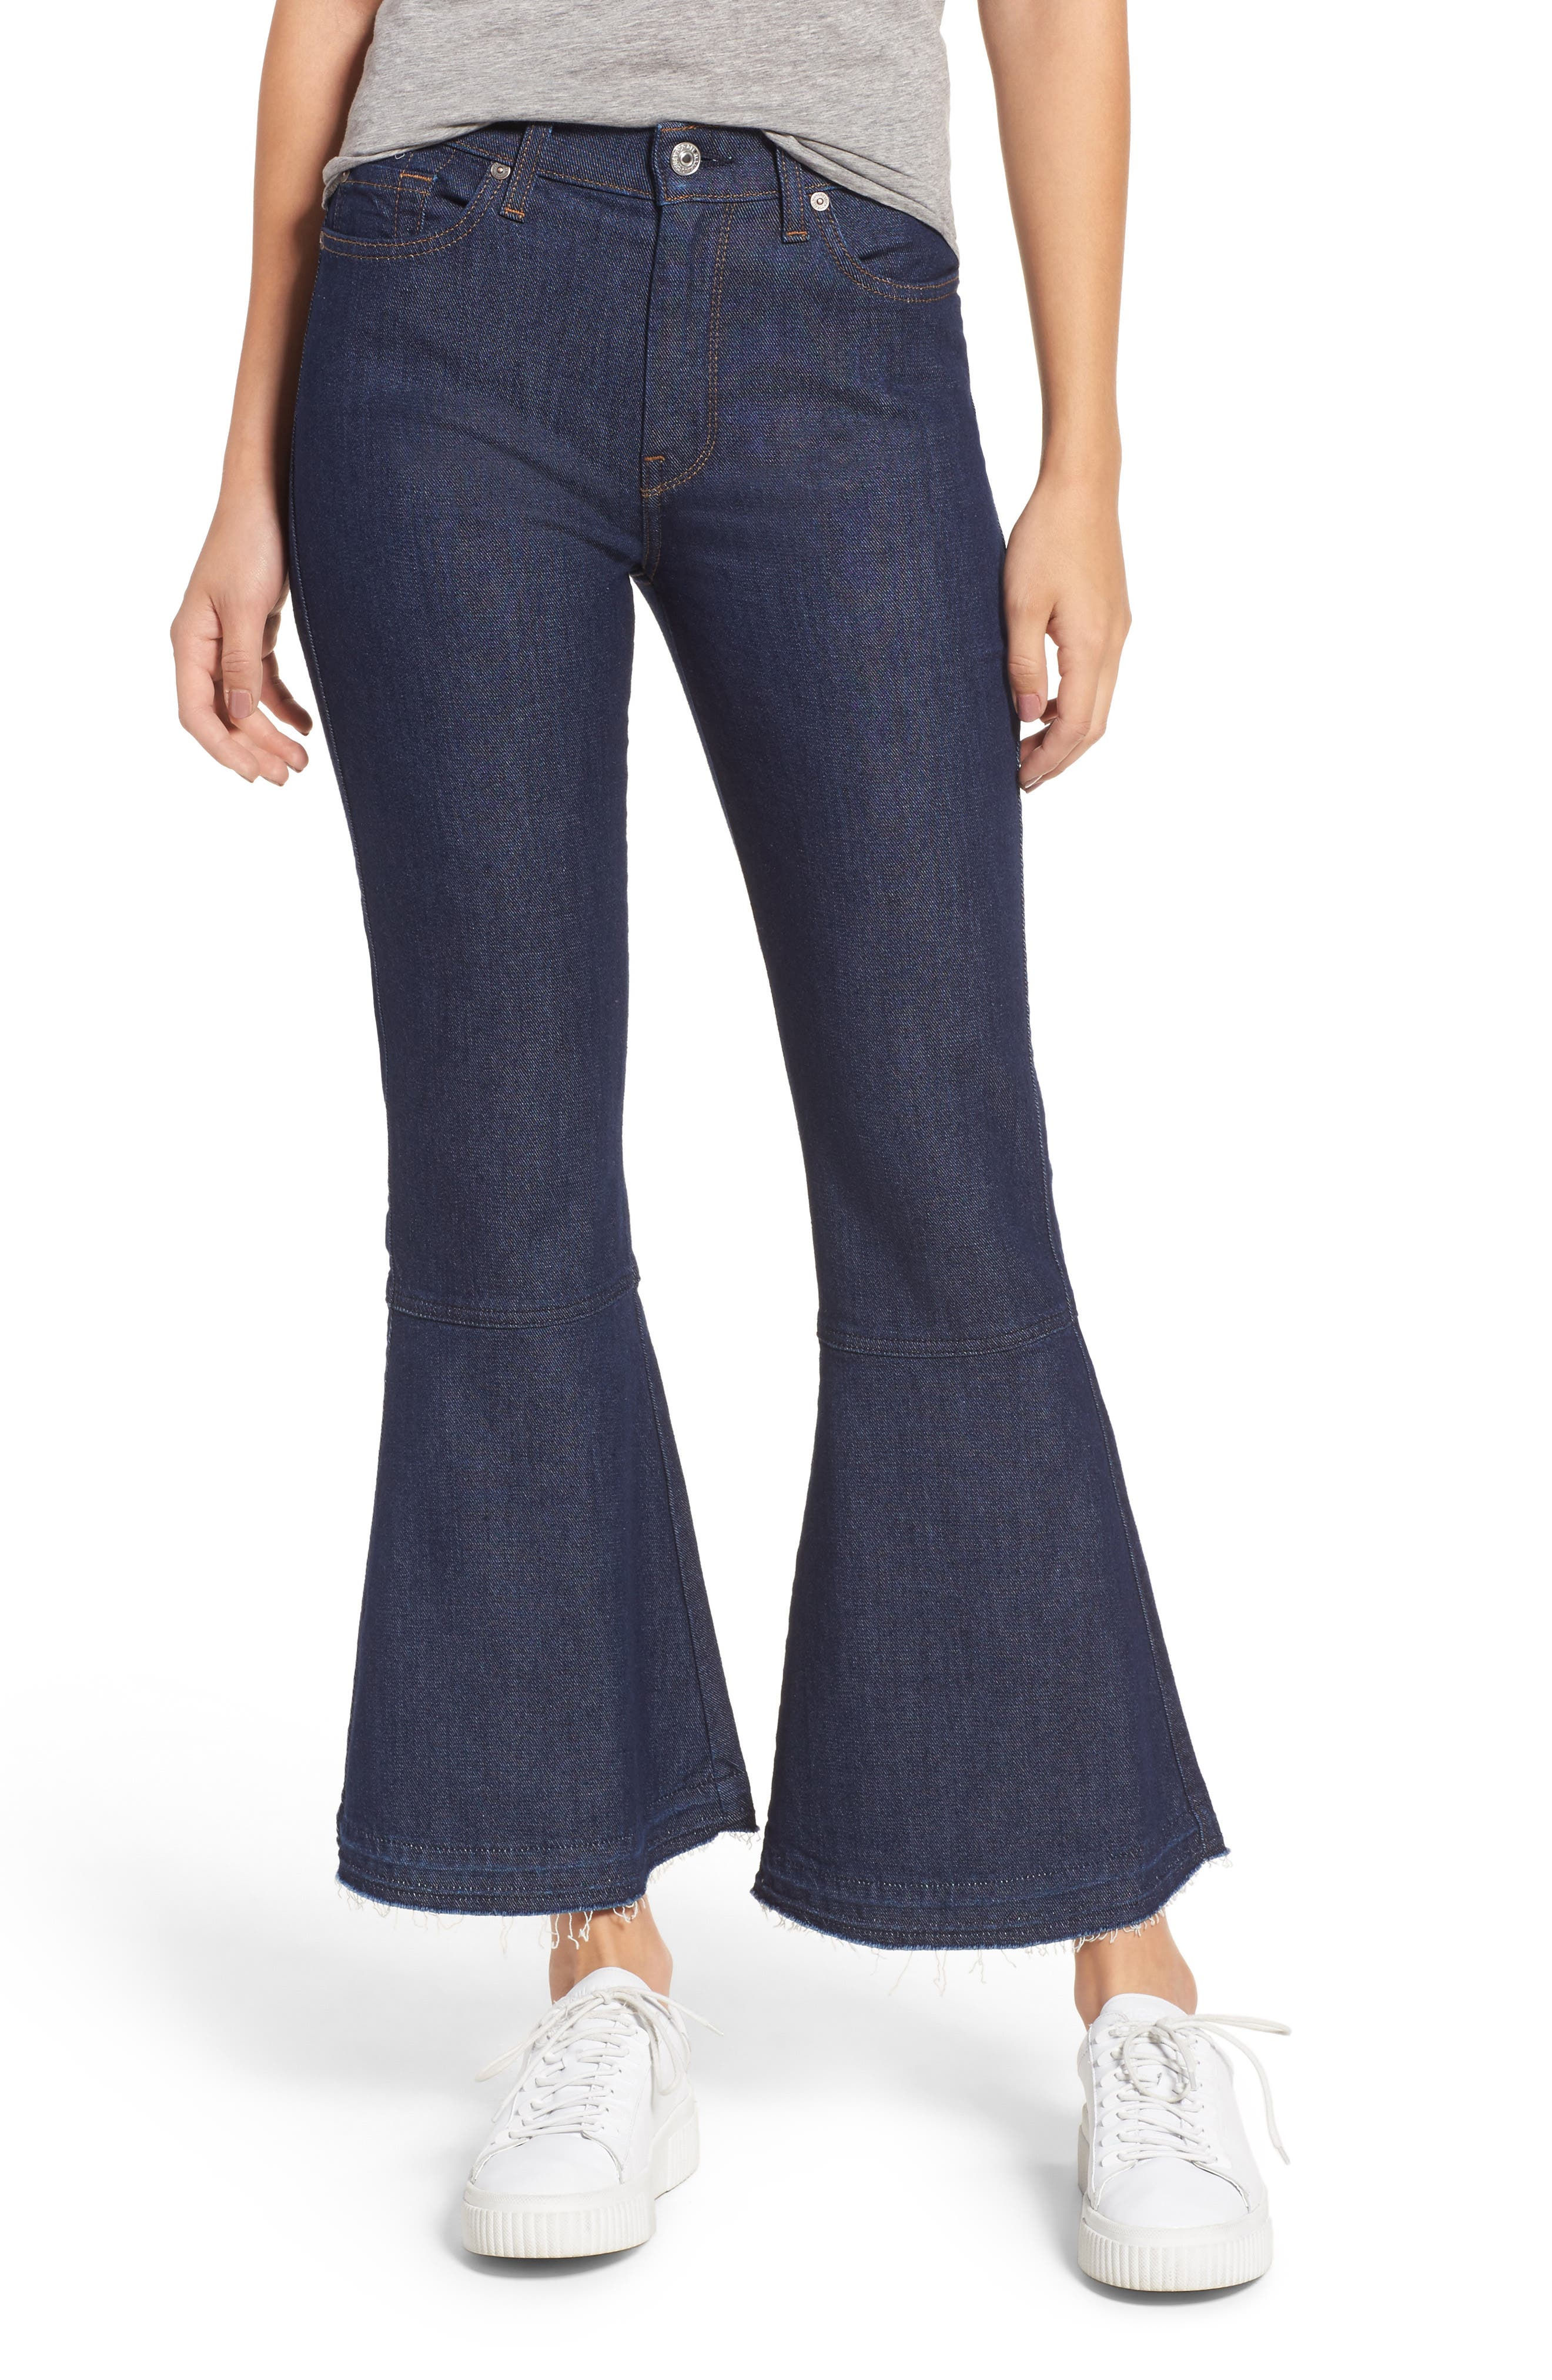 Alternate Image 1 Selected - 7 For All Mankind® Priscilla High Waist Crop Flare Jeans (Wilshire Rinse)